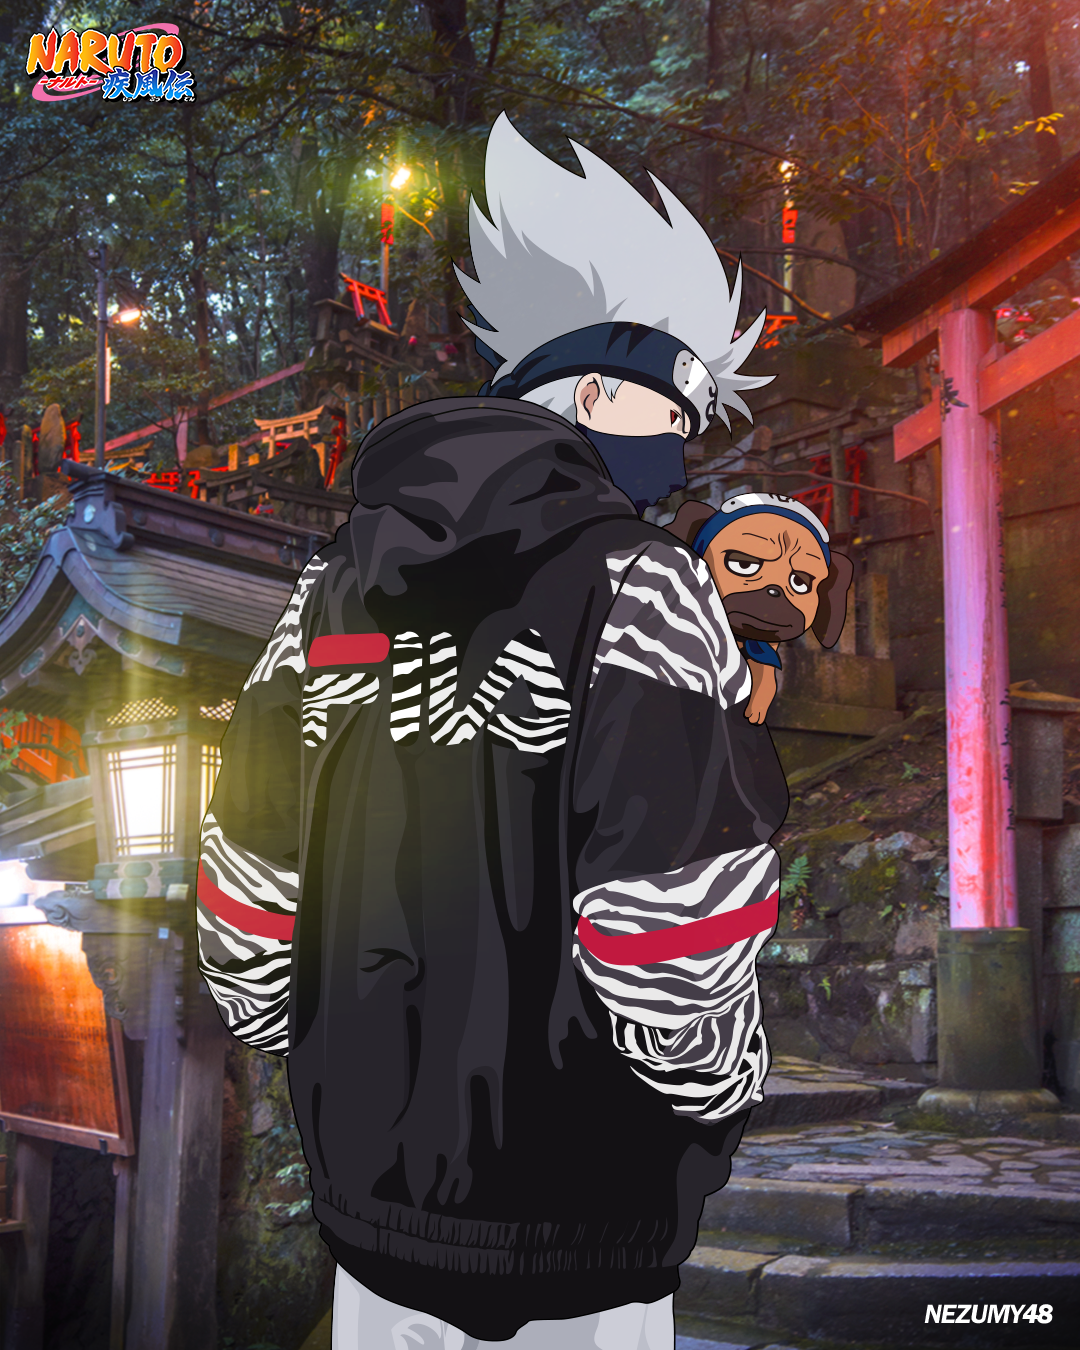 Pain Naruto Wallpaper: Pin By S SHUI On Character ILLUSTRATION/scene